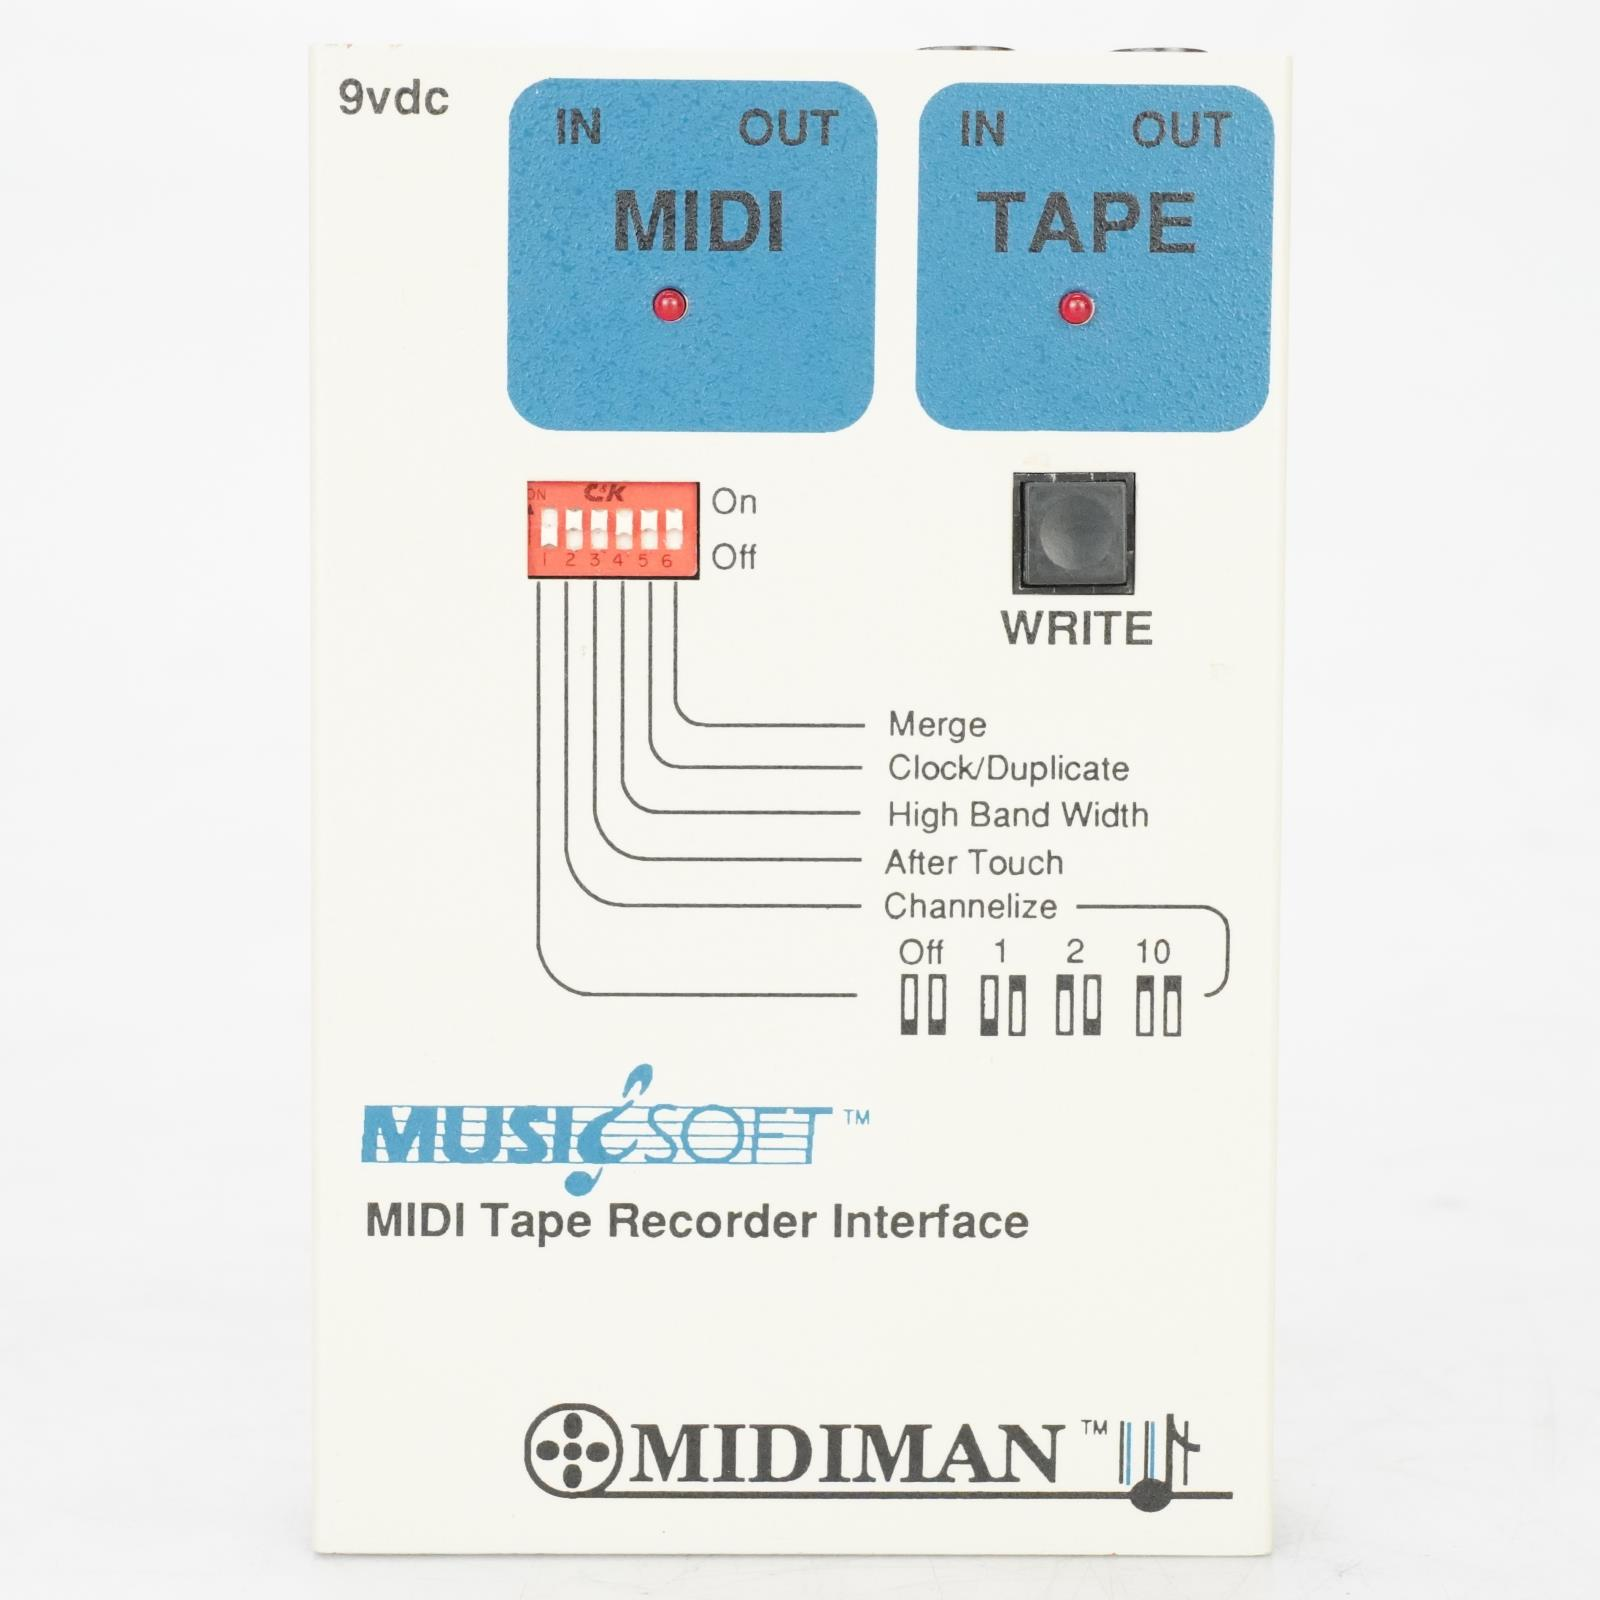 MusicSoft Midiman MIDI Tape Recorder Interface owned by Ed Cherney #39112